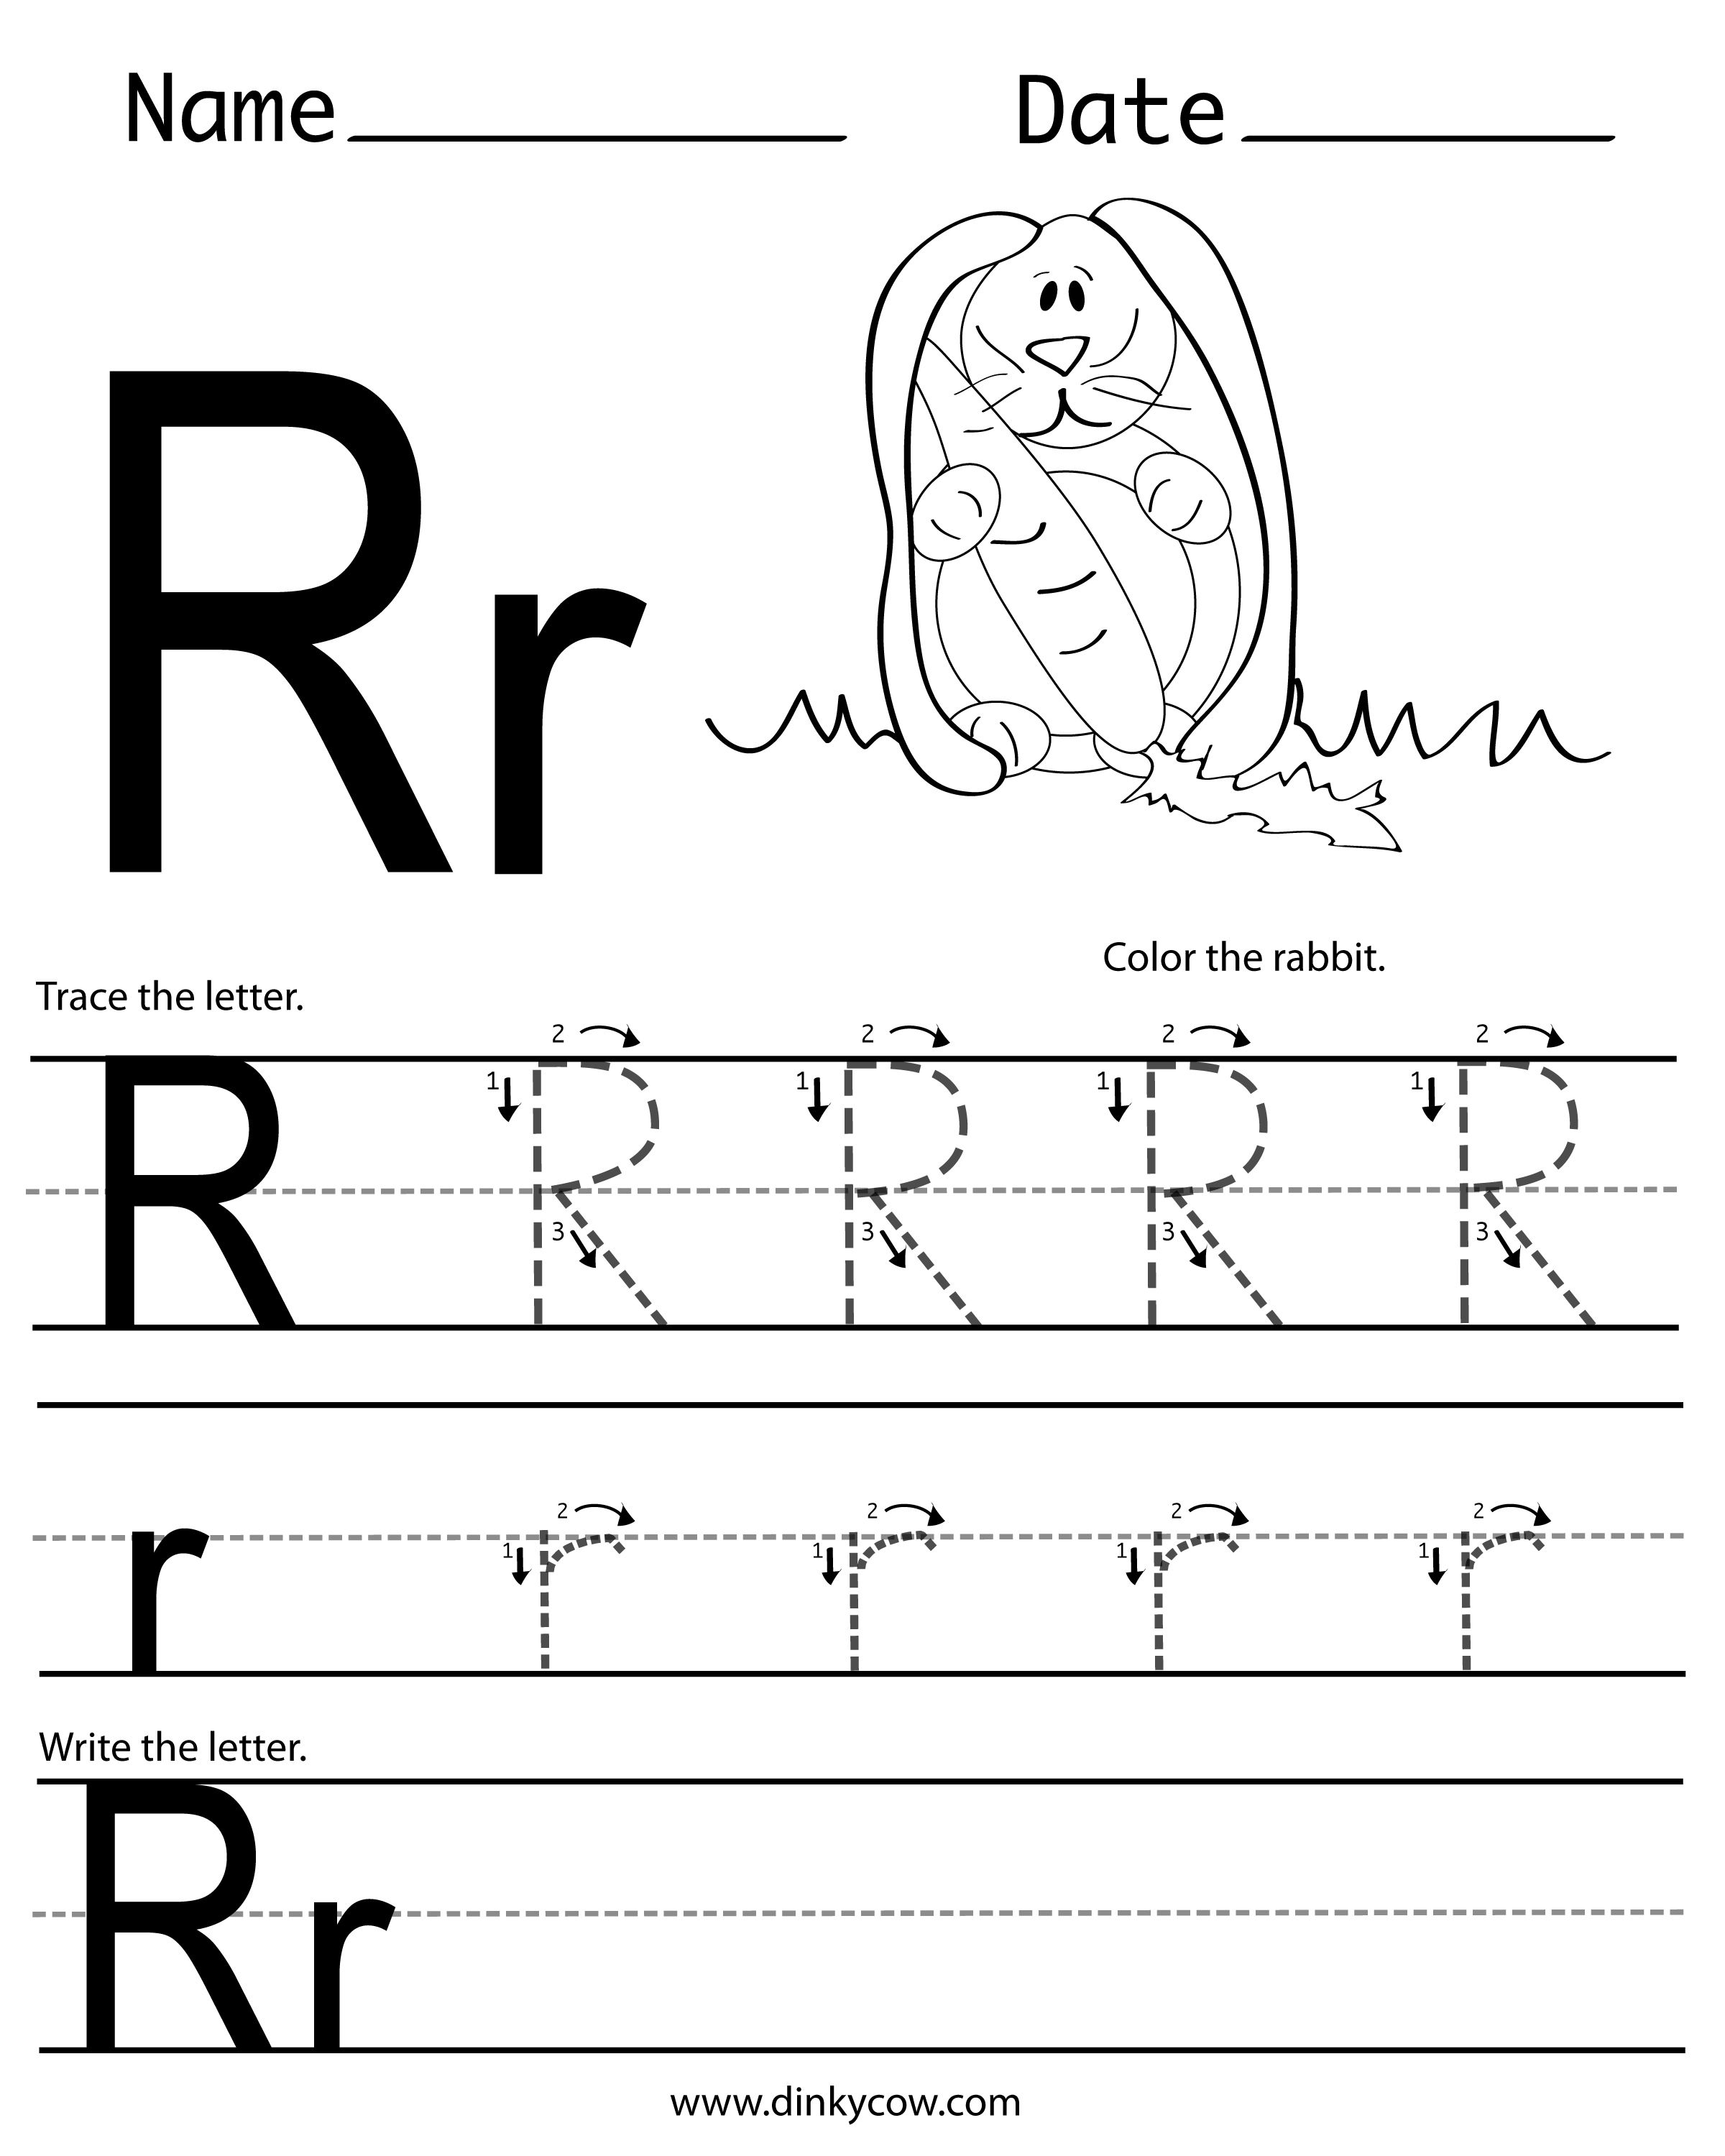 R Free Handwriting Worksheet 2 400 3 000 Pixels